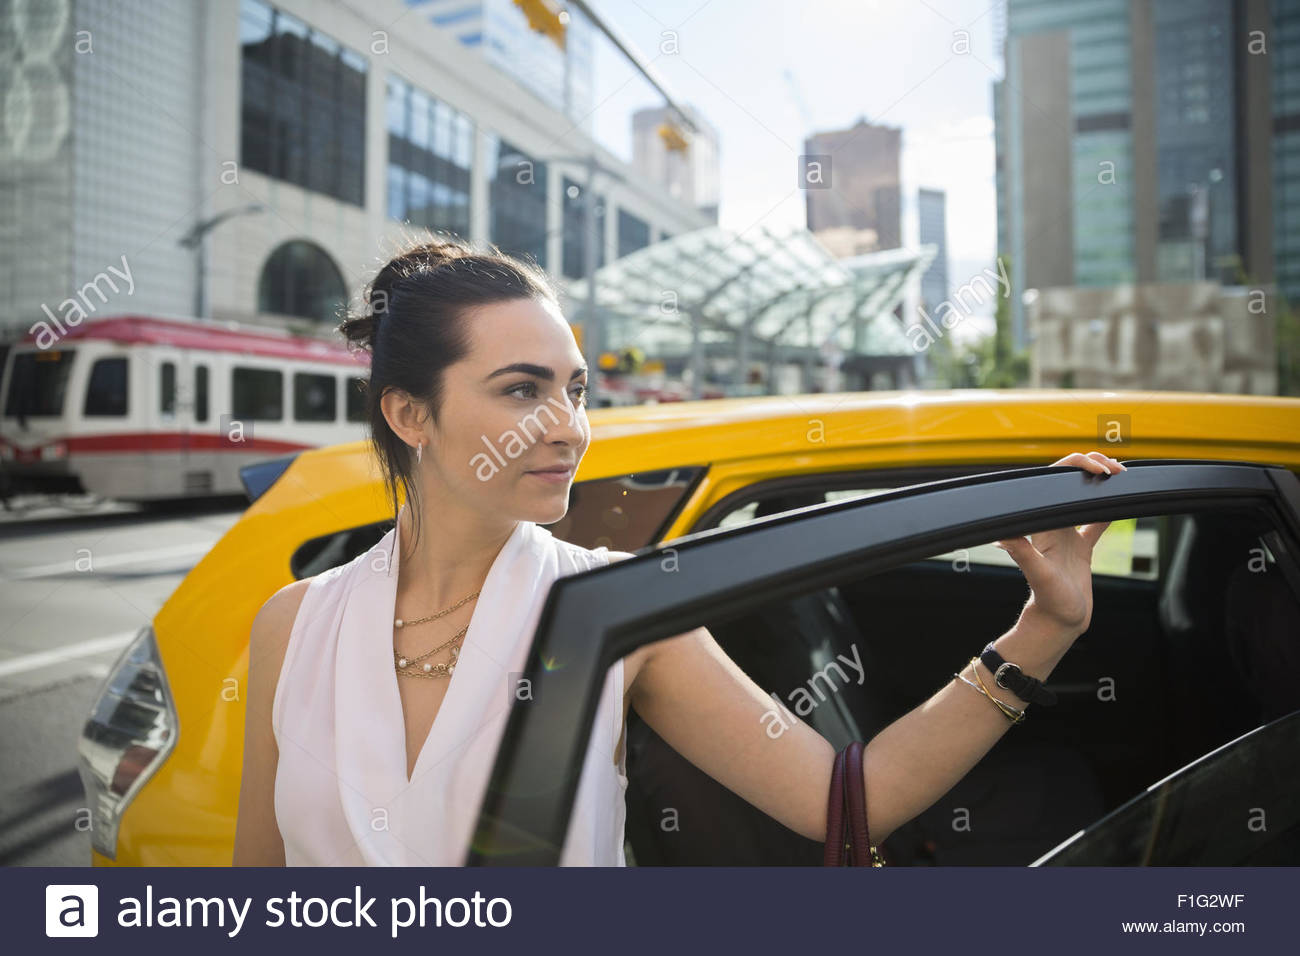 Businesswoman getting out of taxi in city Stock Photo